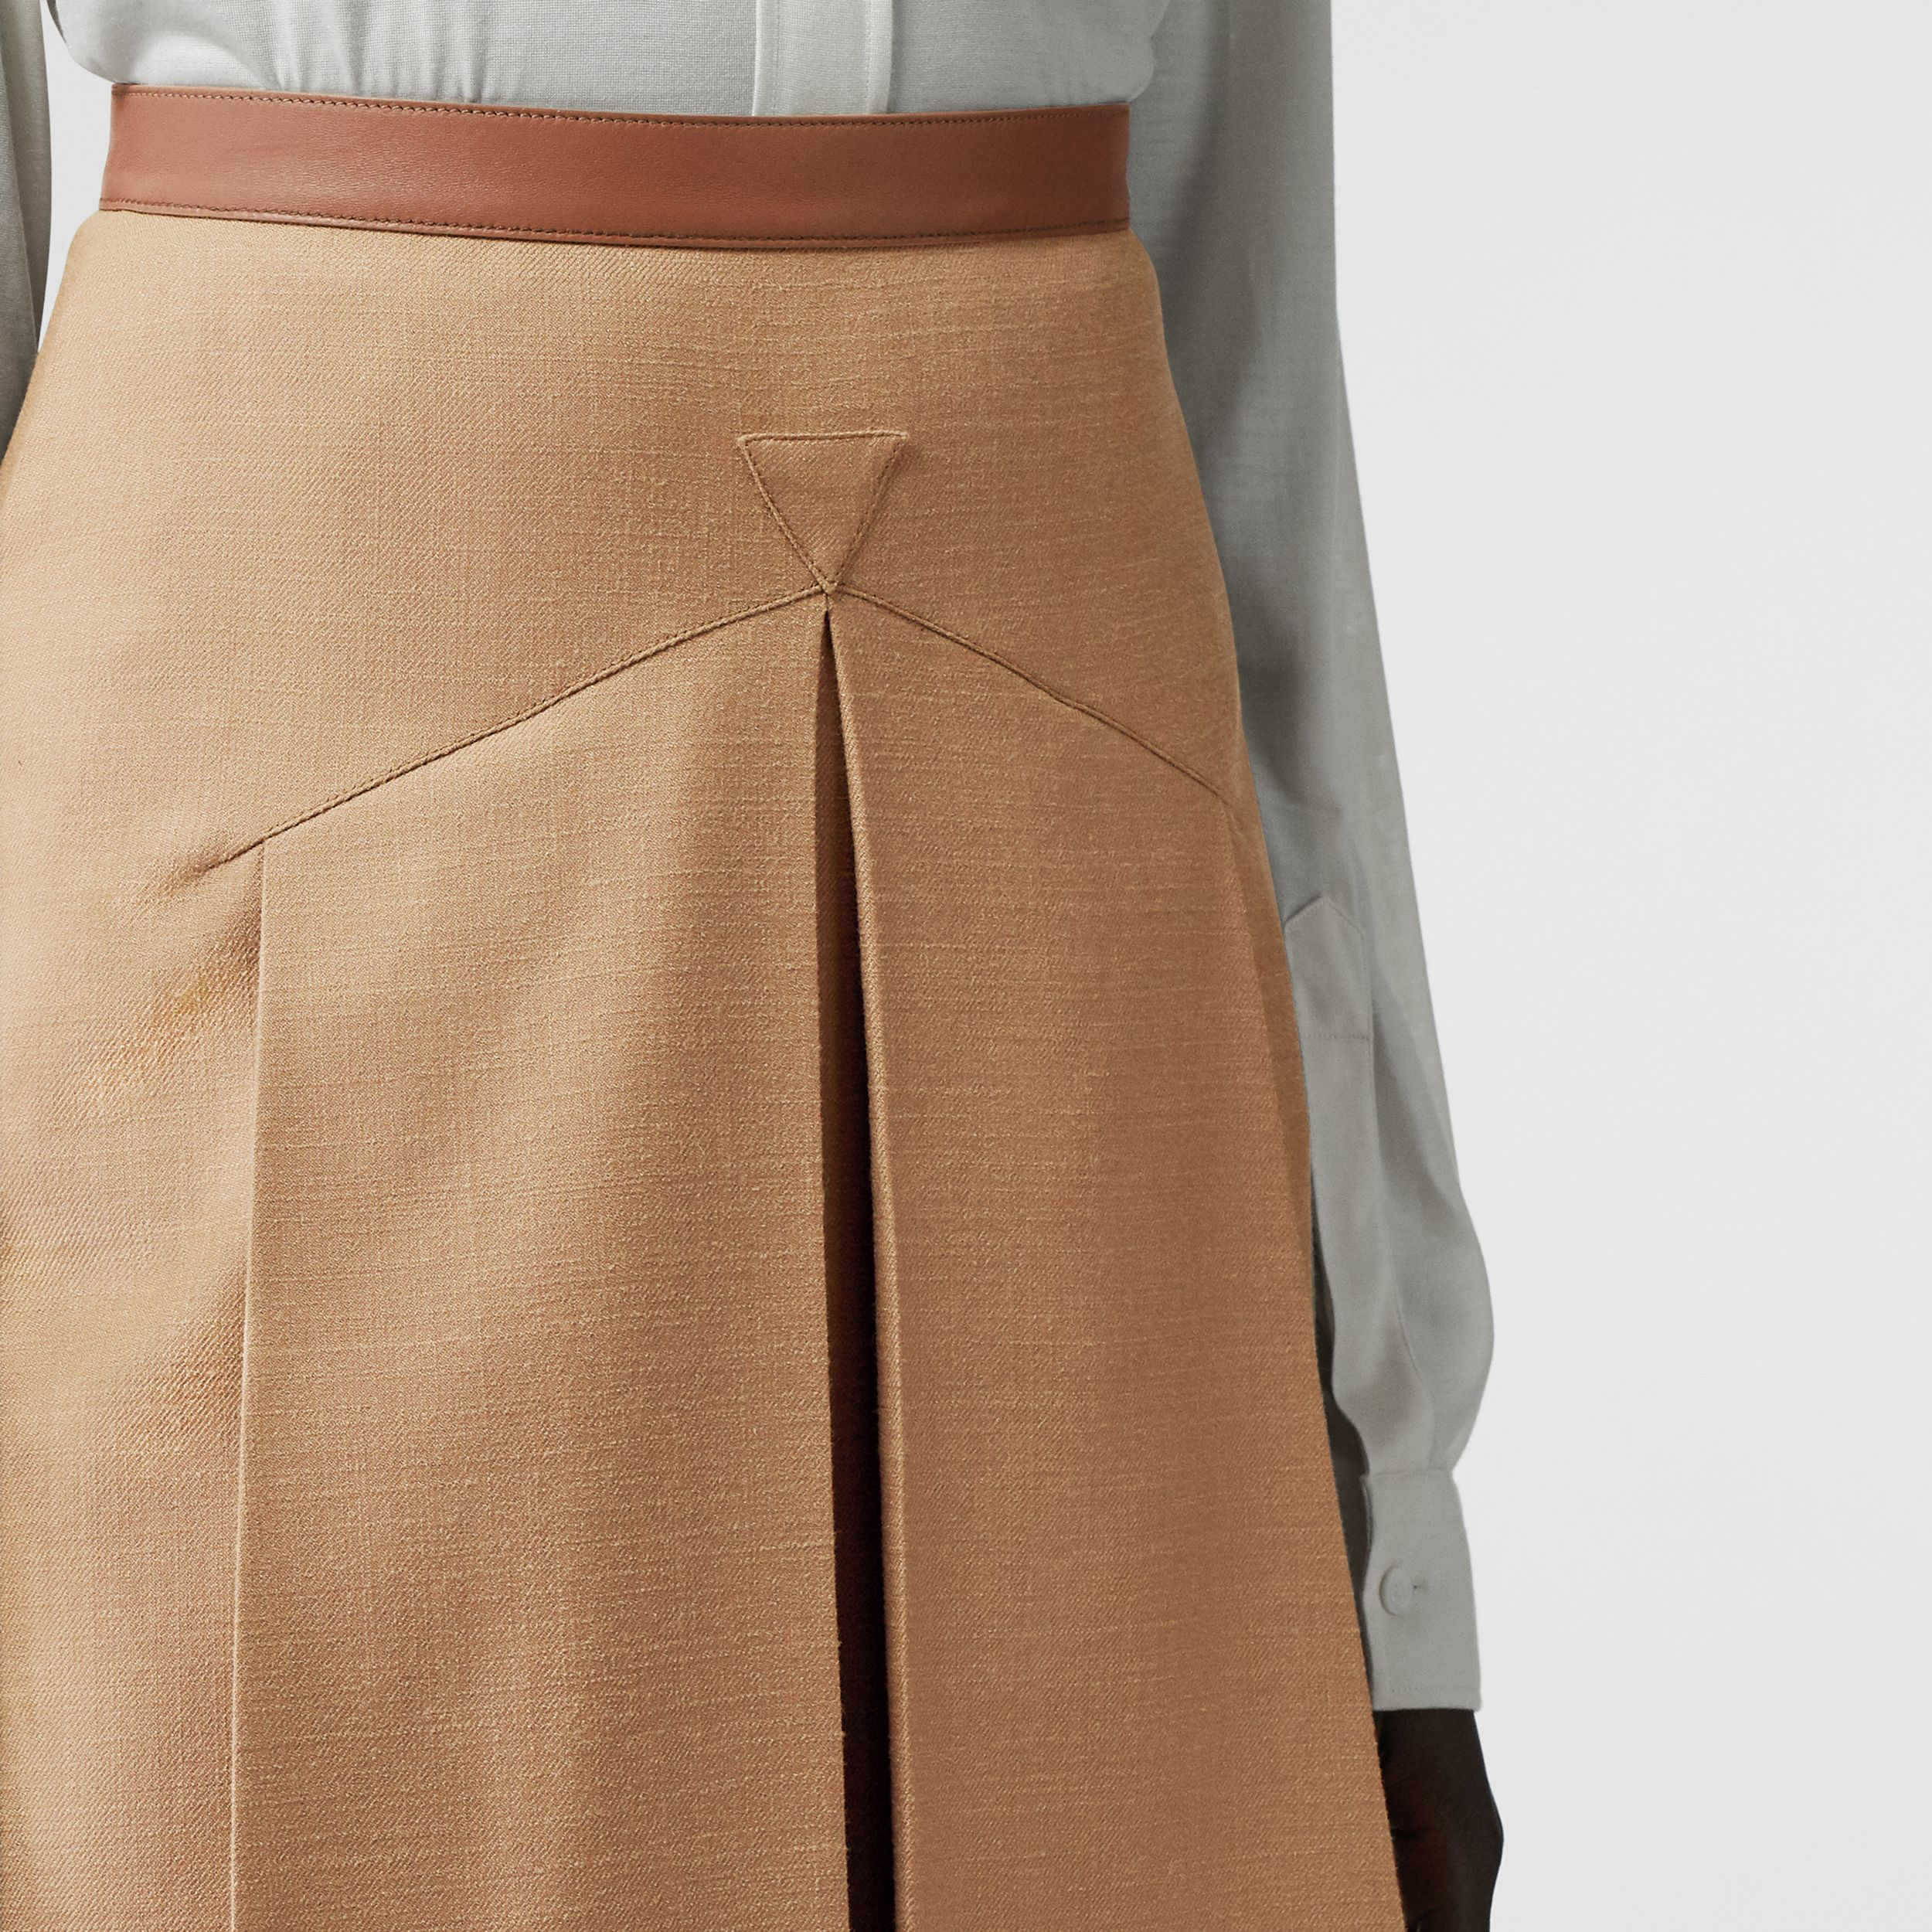 Lambskin Trim Box-pleated Wool Silk Skirt in Camel - Women | Burberry Australia - 2